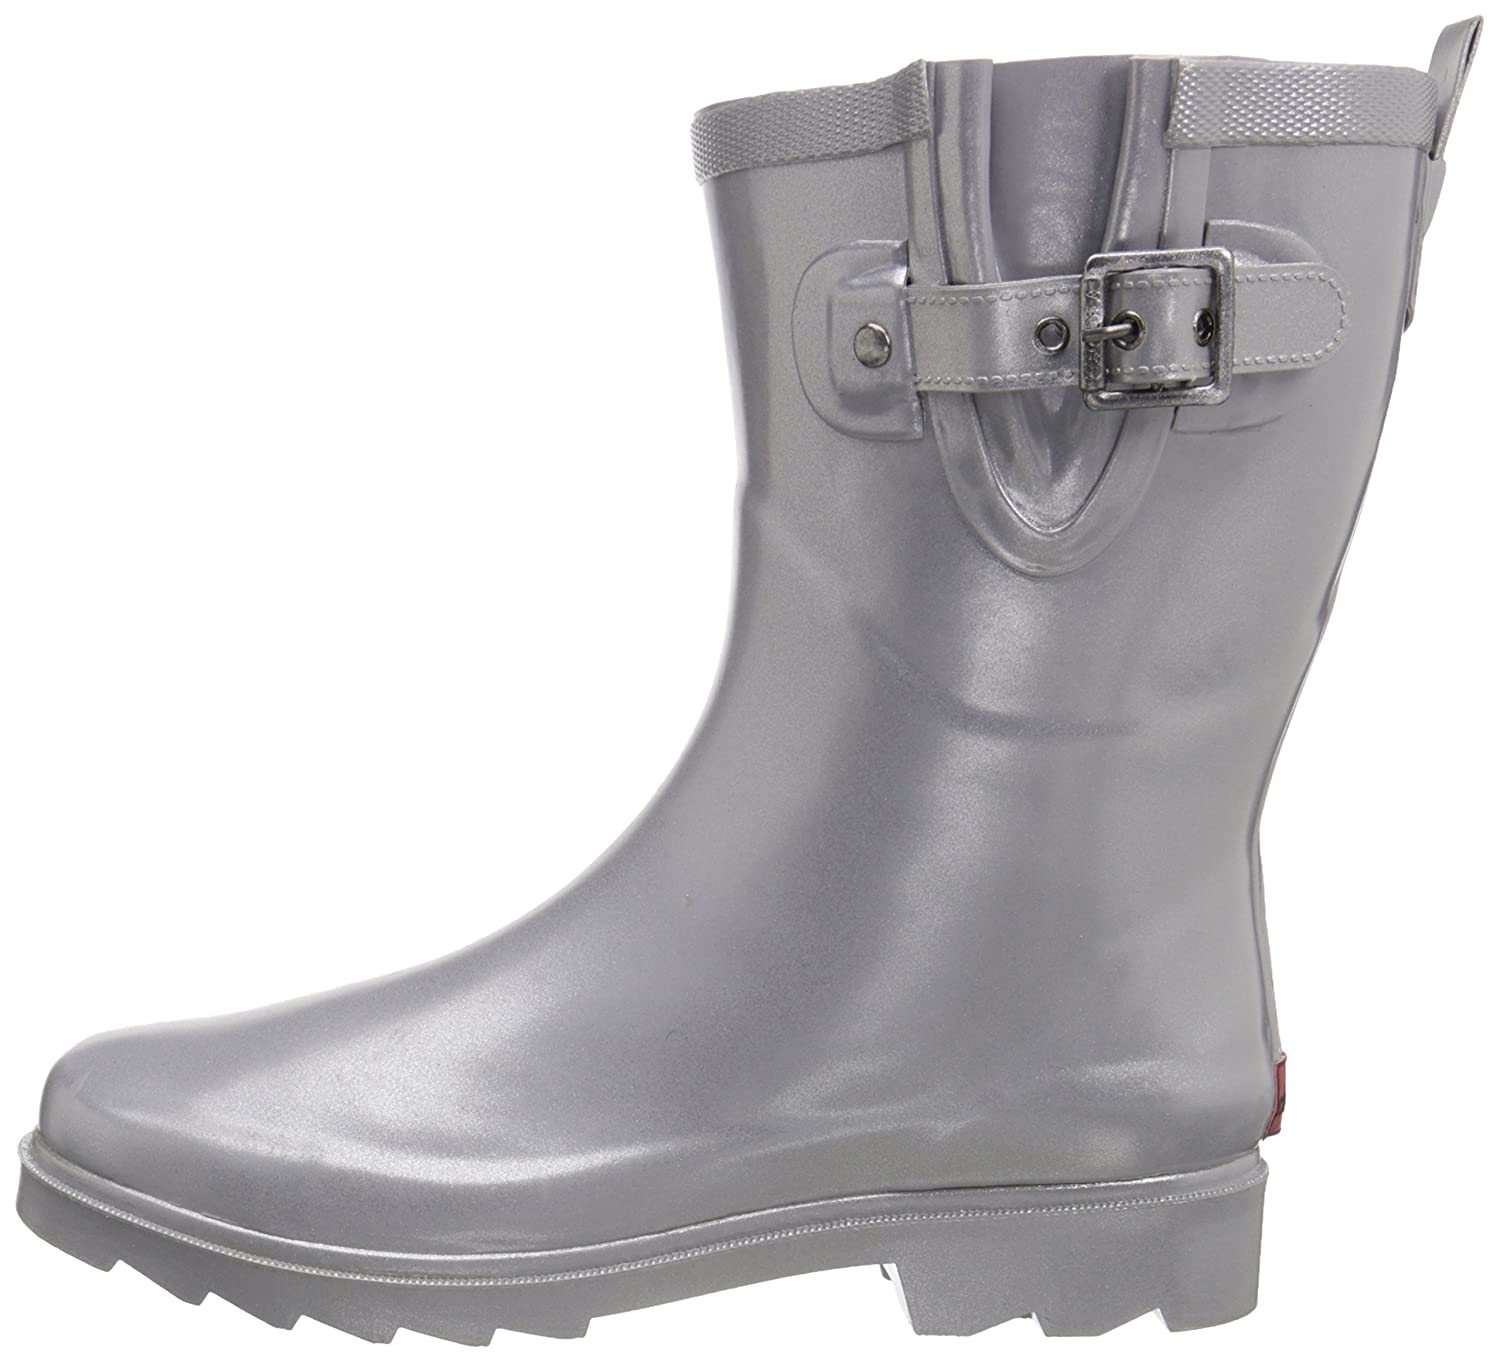 Chooka Women's Mid-Height Rain Boot B013PHIMW2 8 B(M) US|Silver